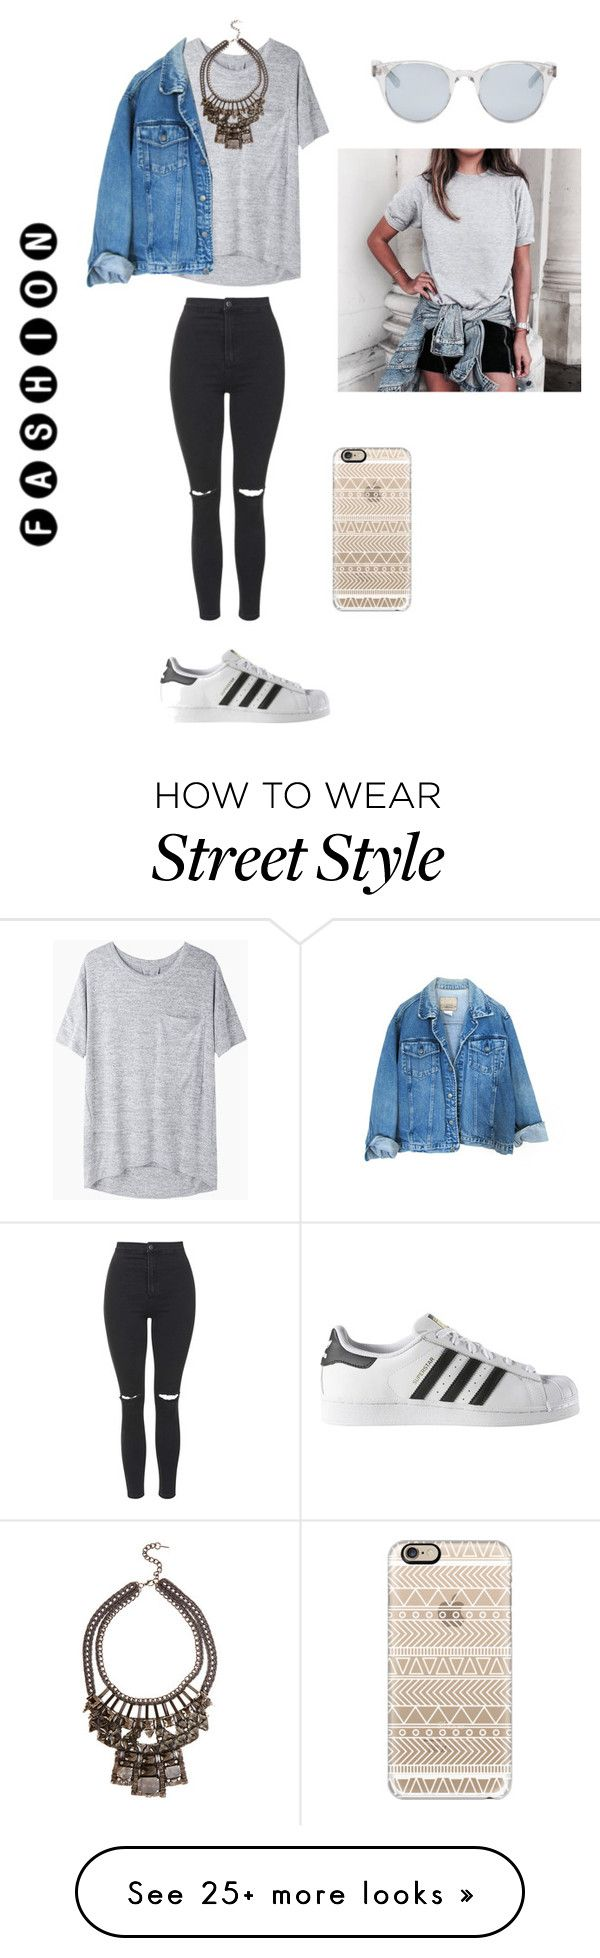 """Street style"" by zala-persolja on Polyvore featuring Topshop, rag & bone/JEAN, adidas, Sun Buddies and Casetify"